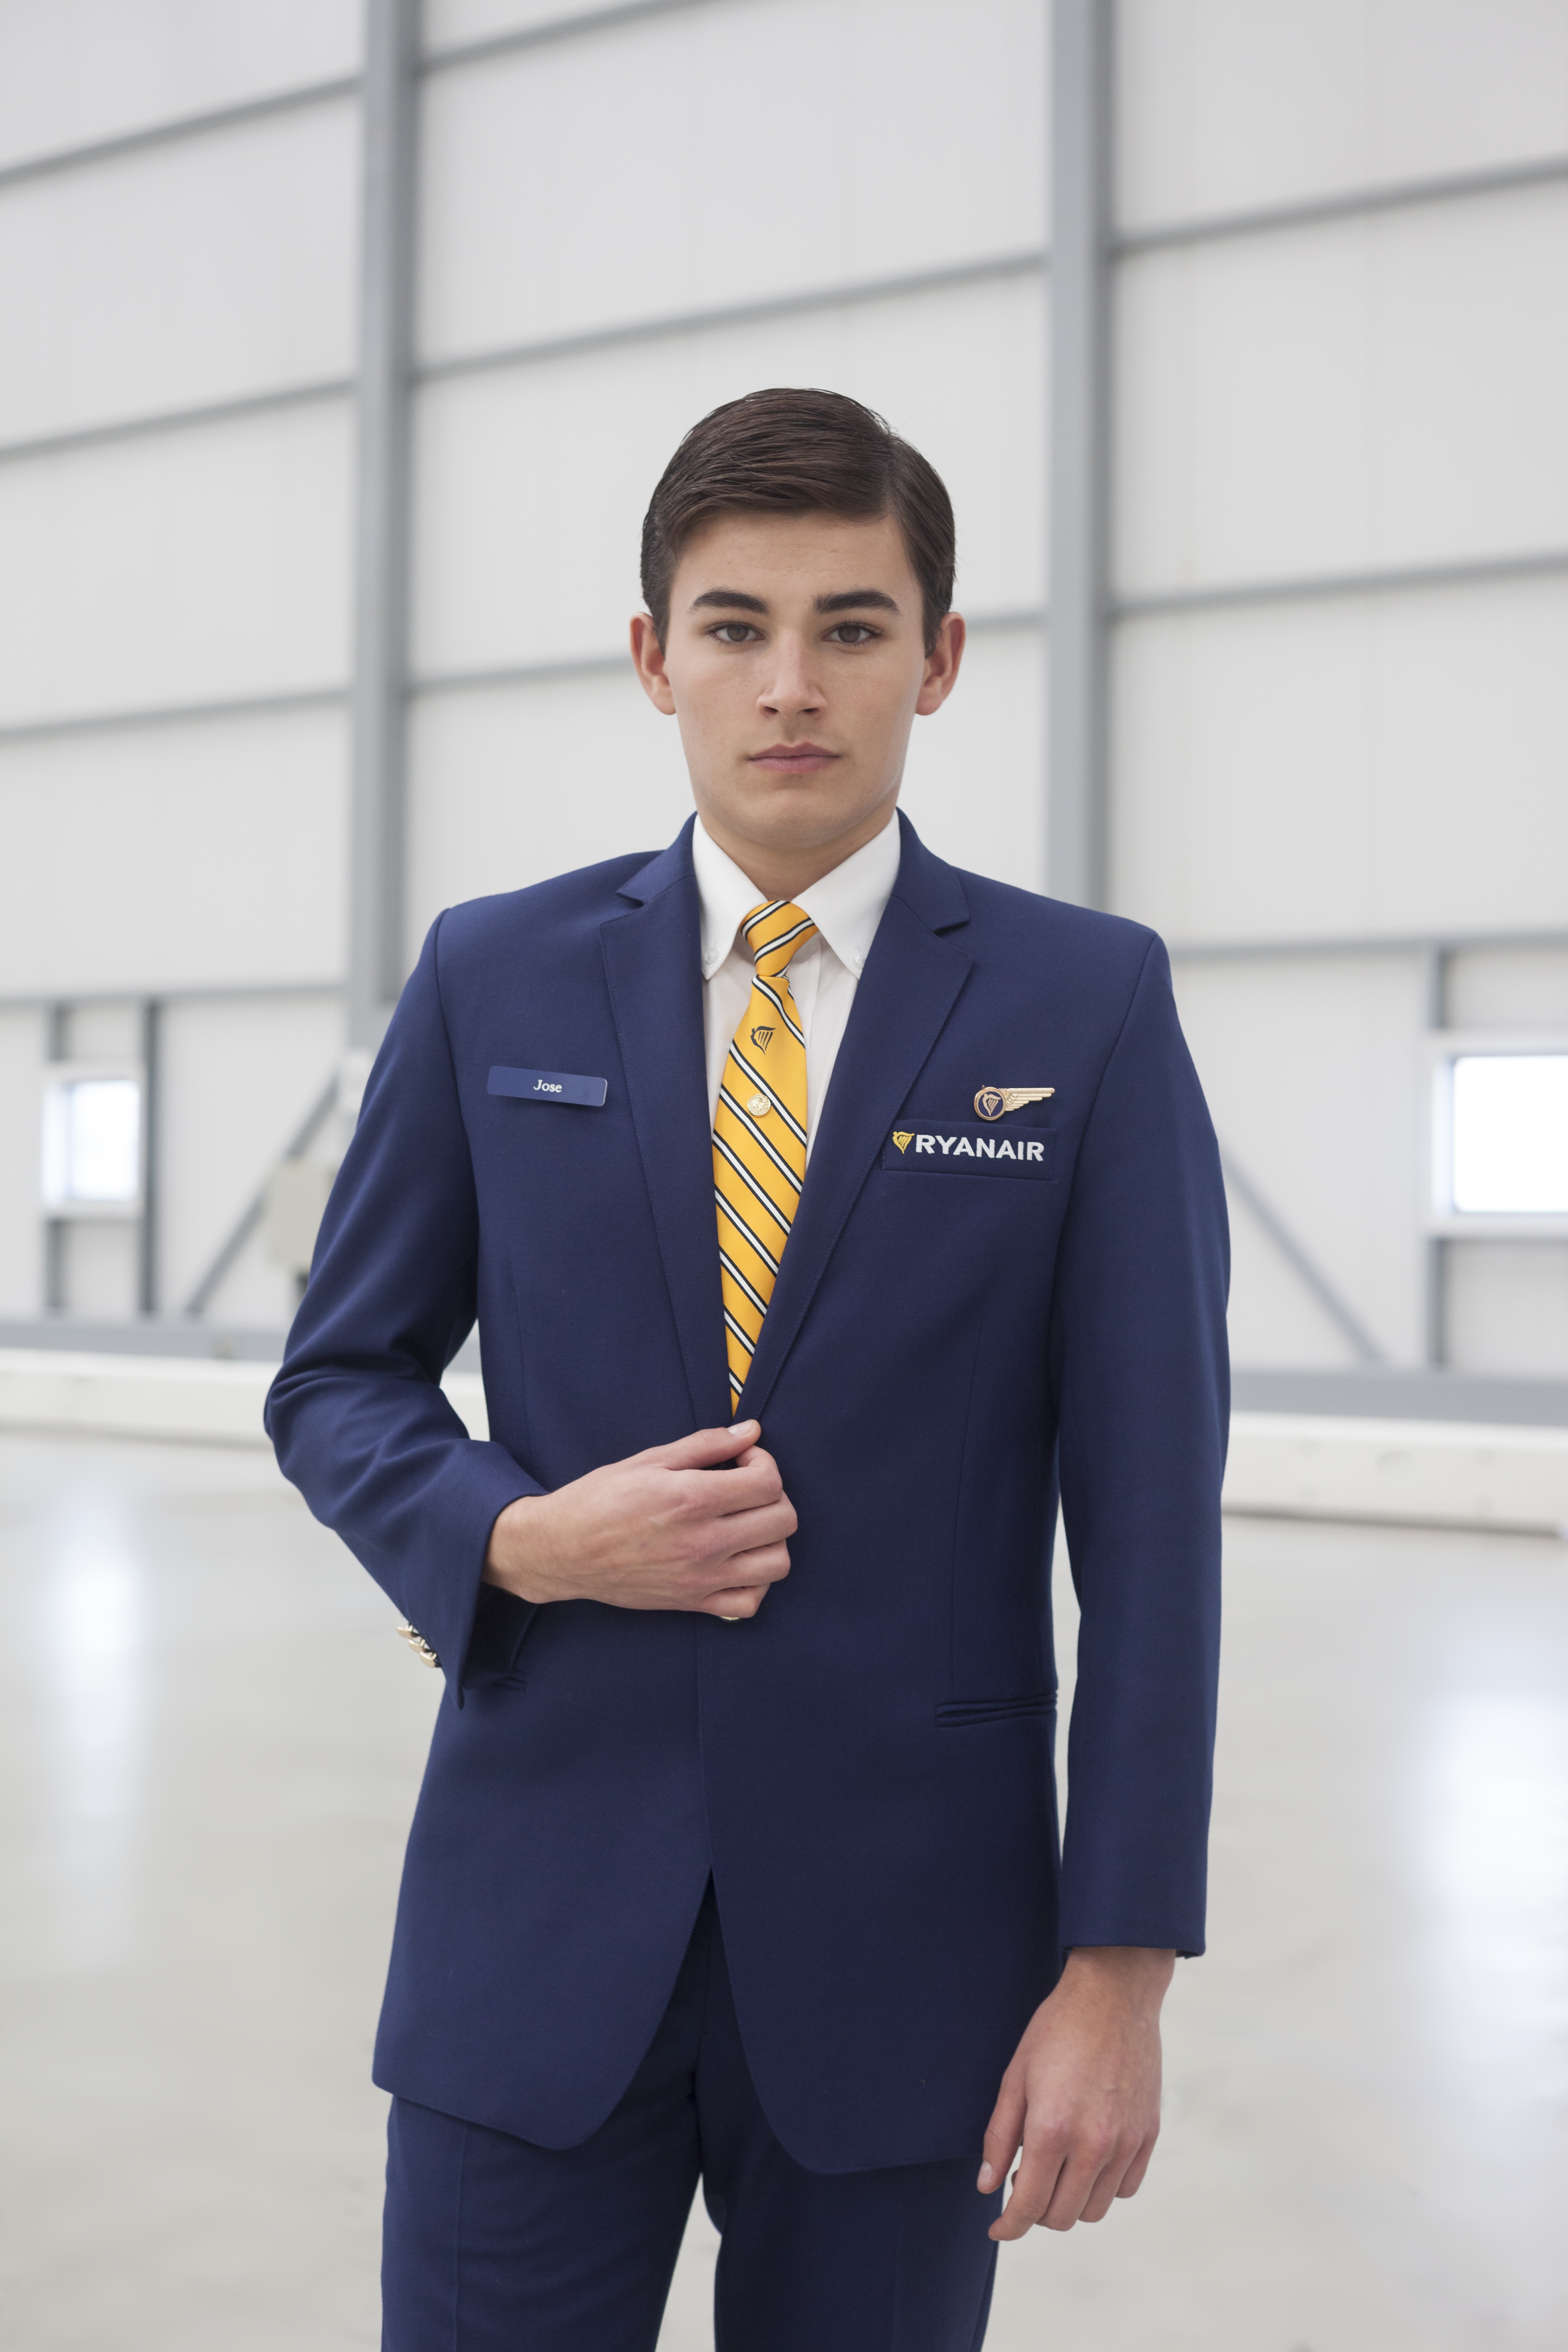 what is cabin crew The role of an air cabin crew member is to provide excellent customer service to passengers while ensuring their comfort and safety throughout the flight they're.